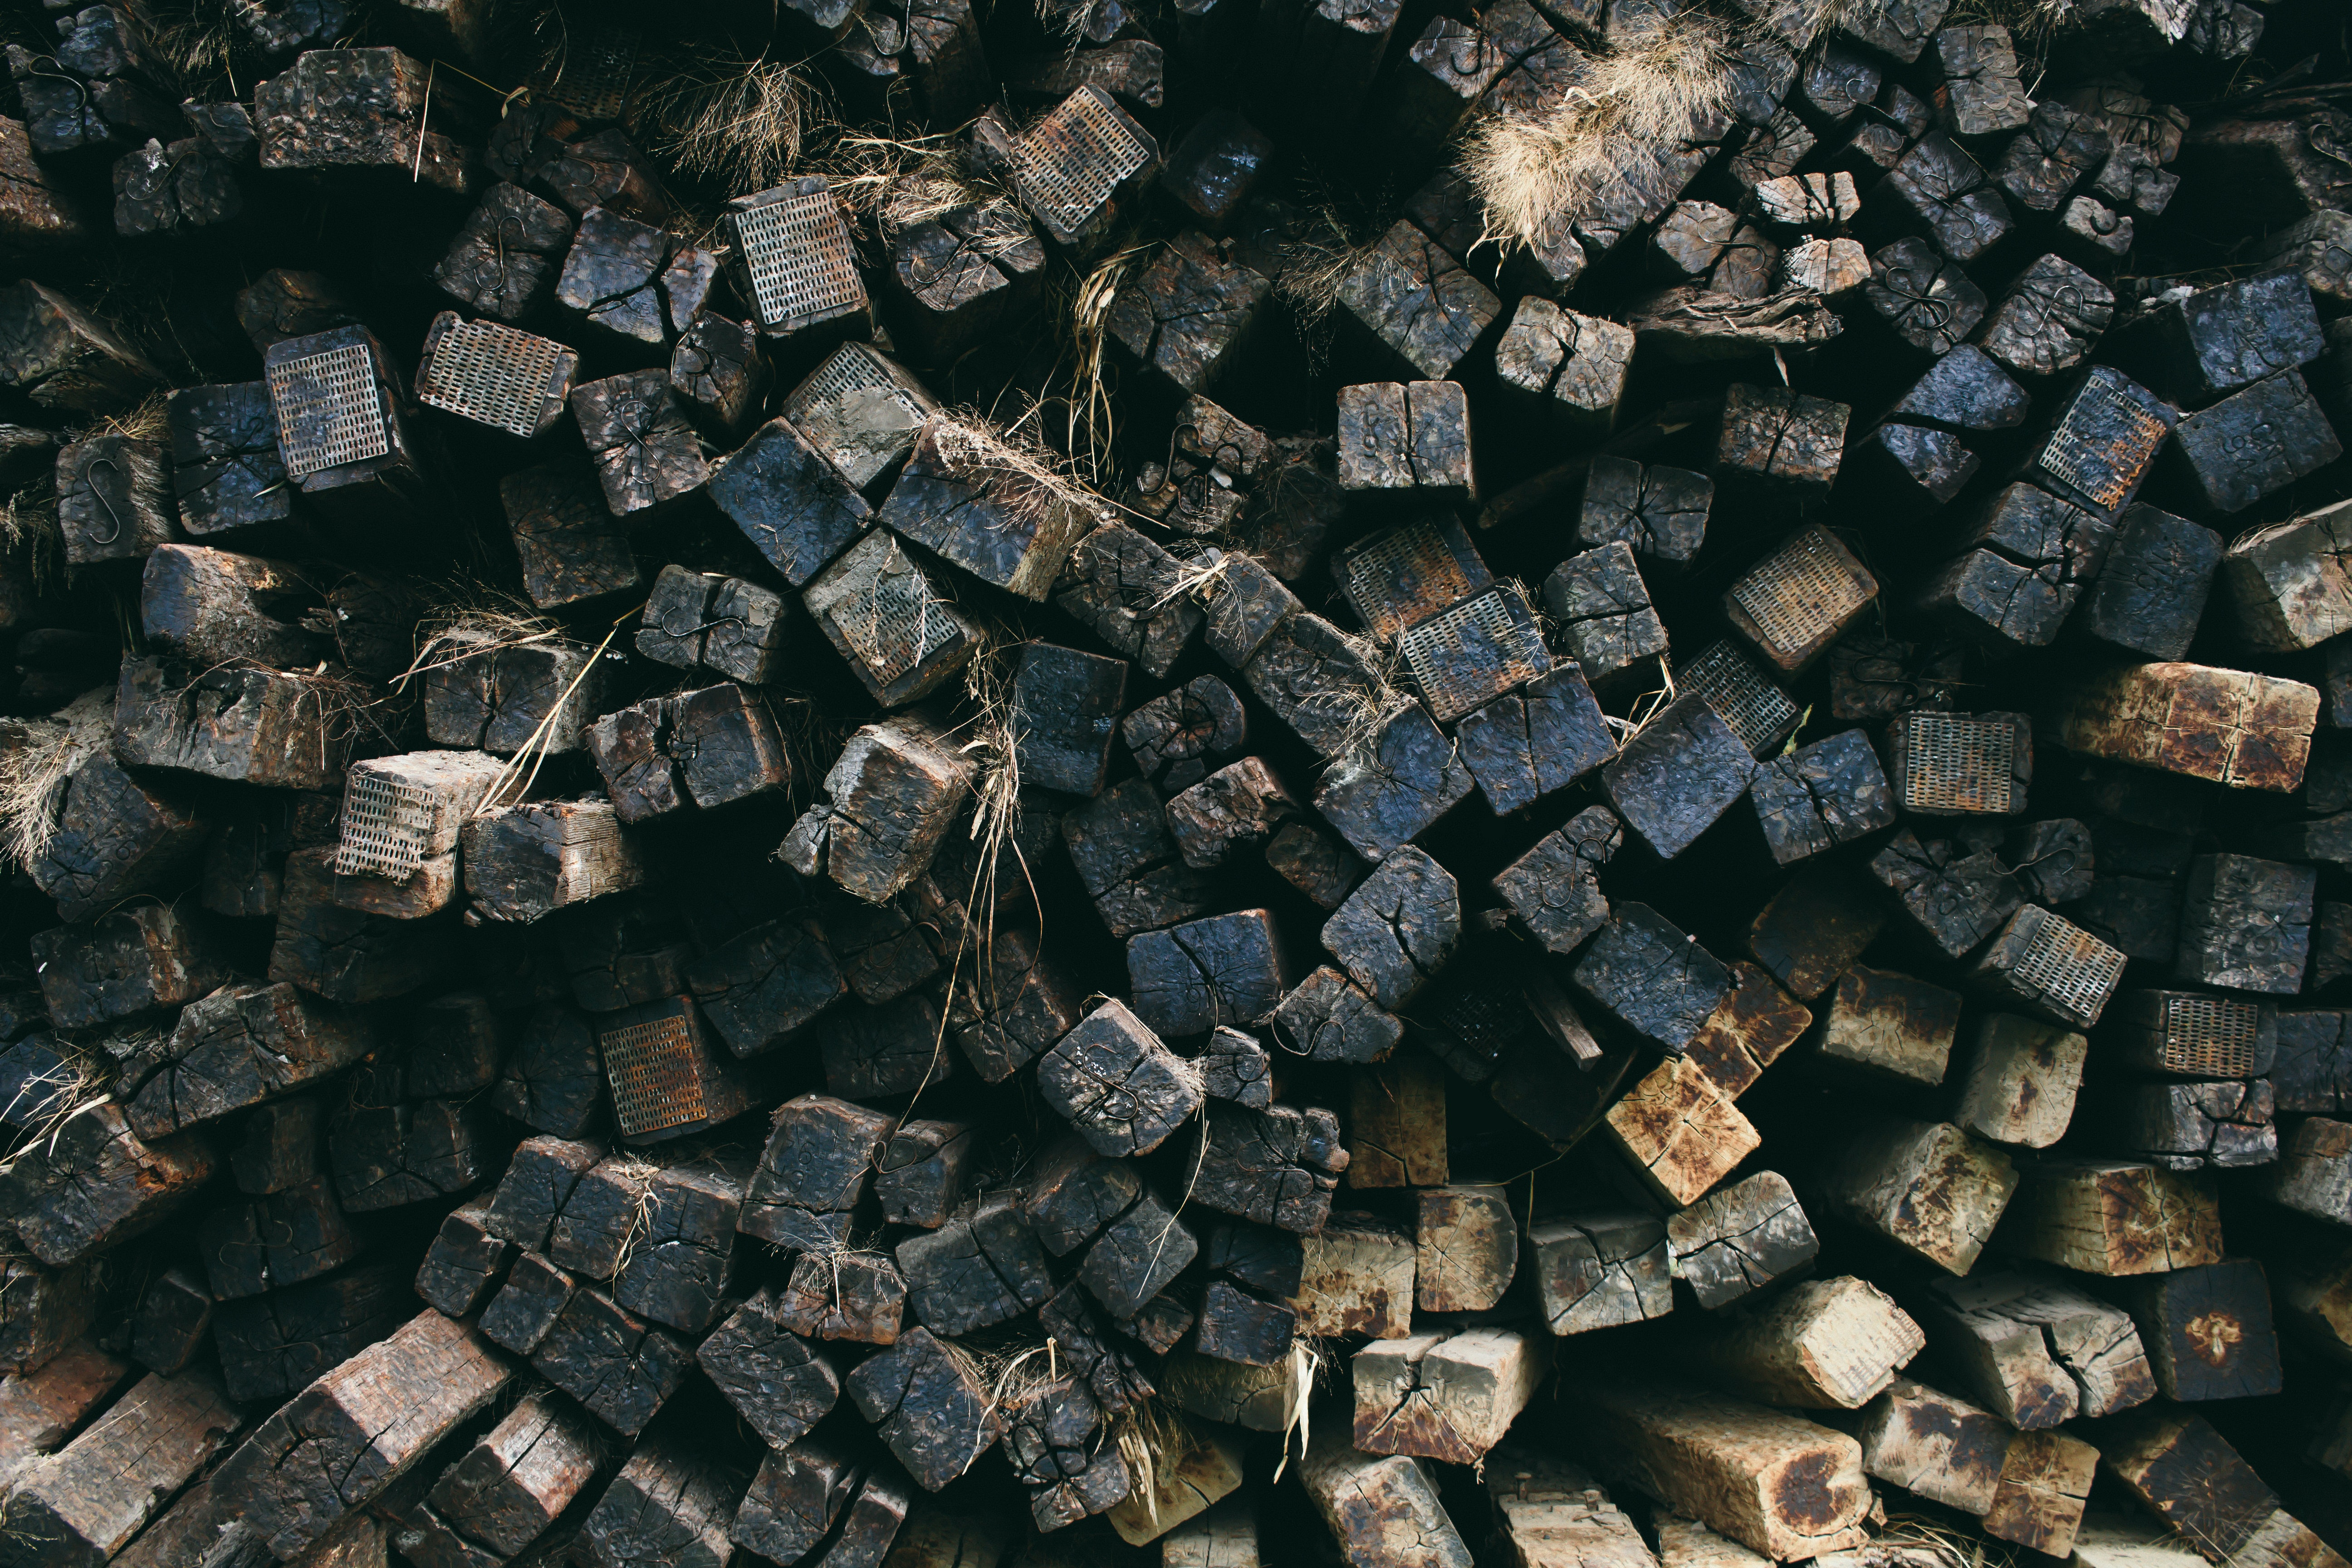 photo of pile of firewood